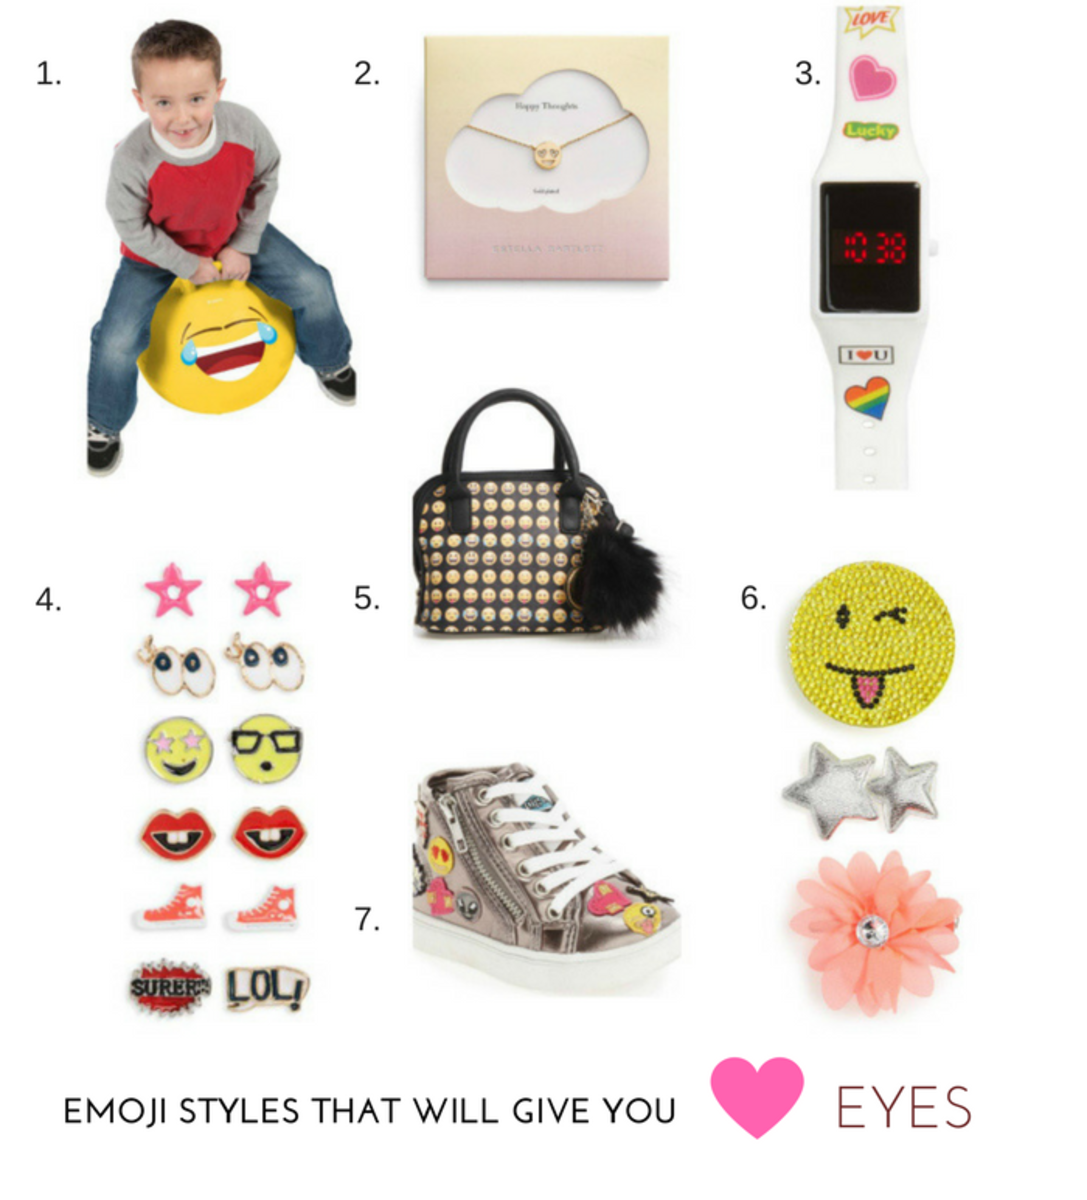 Emoji Styles Worth Eyes